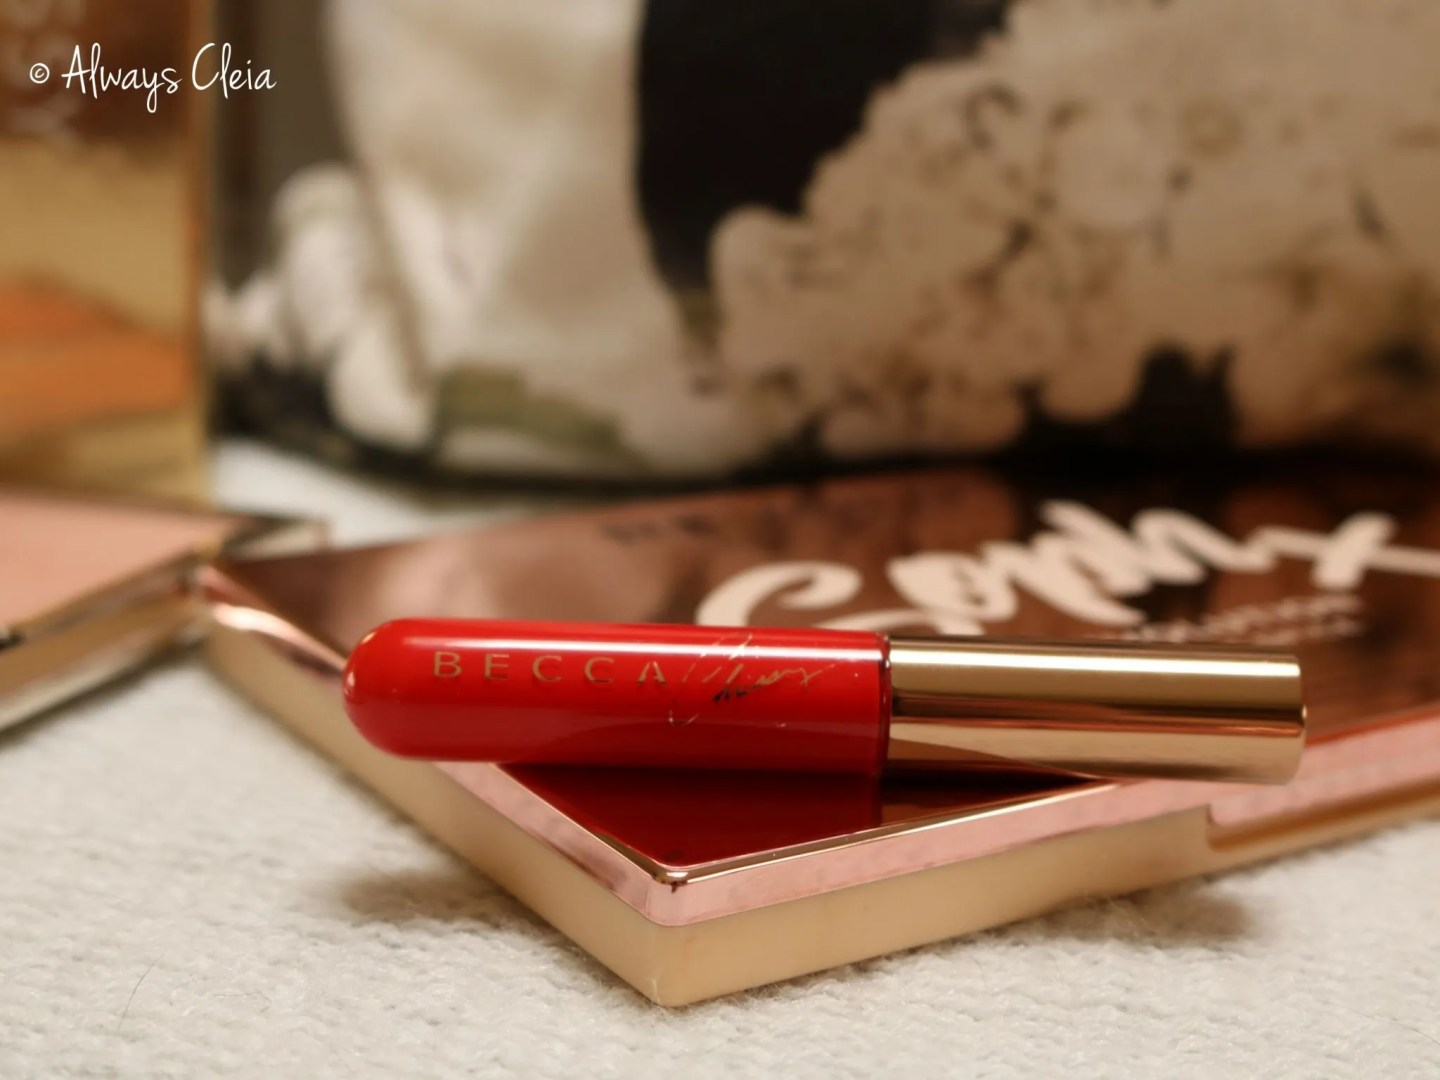 Glow Lip Gloss in Candy Cane | Chrissy Teigan Lip Icing